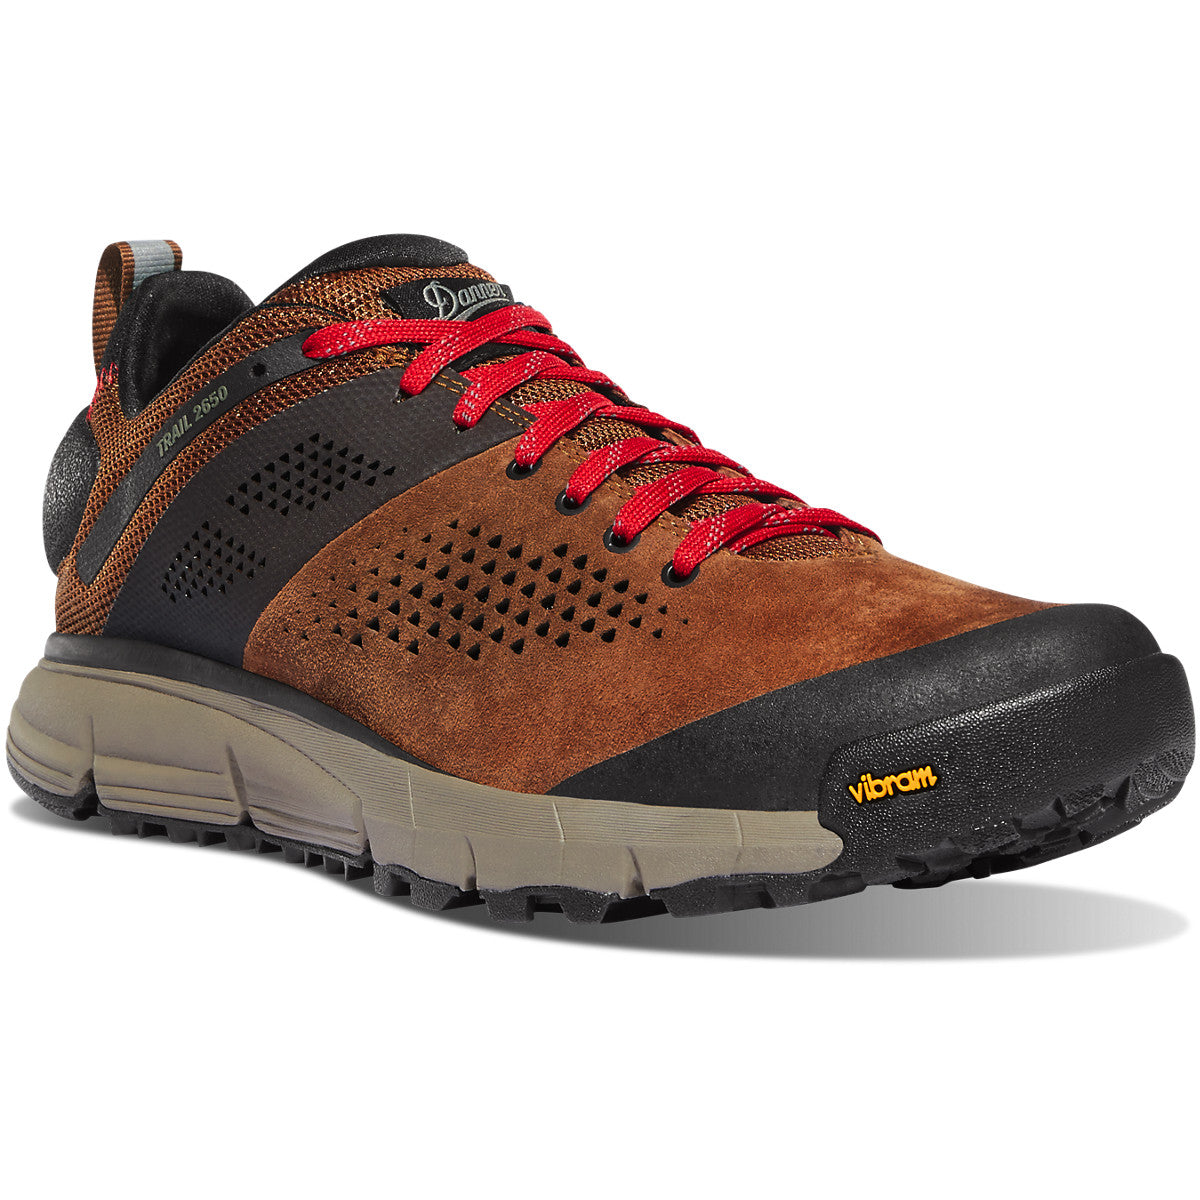 "Danner Trail 2650 3"" Men's Boot 61272"